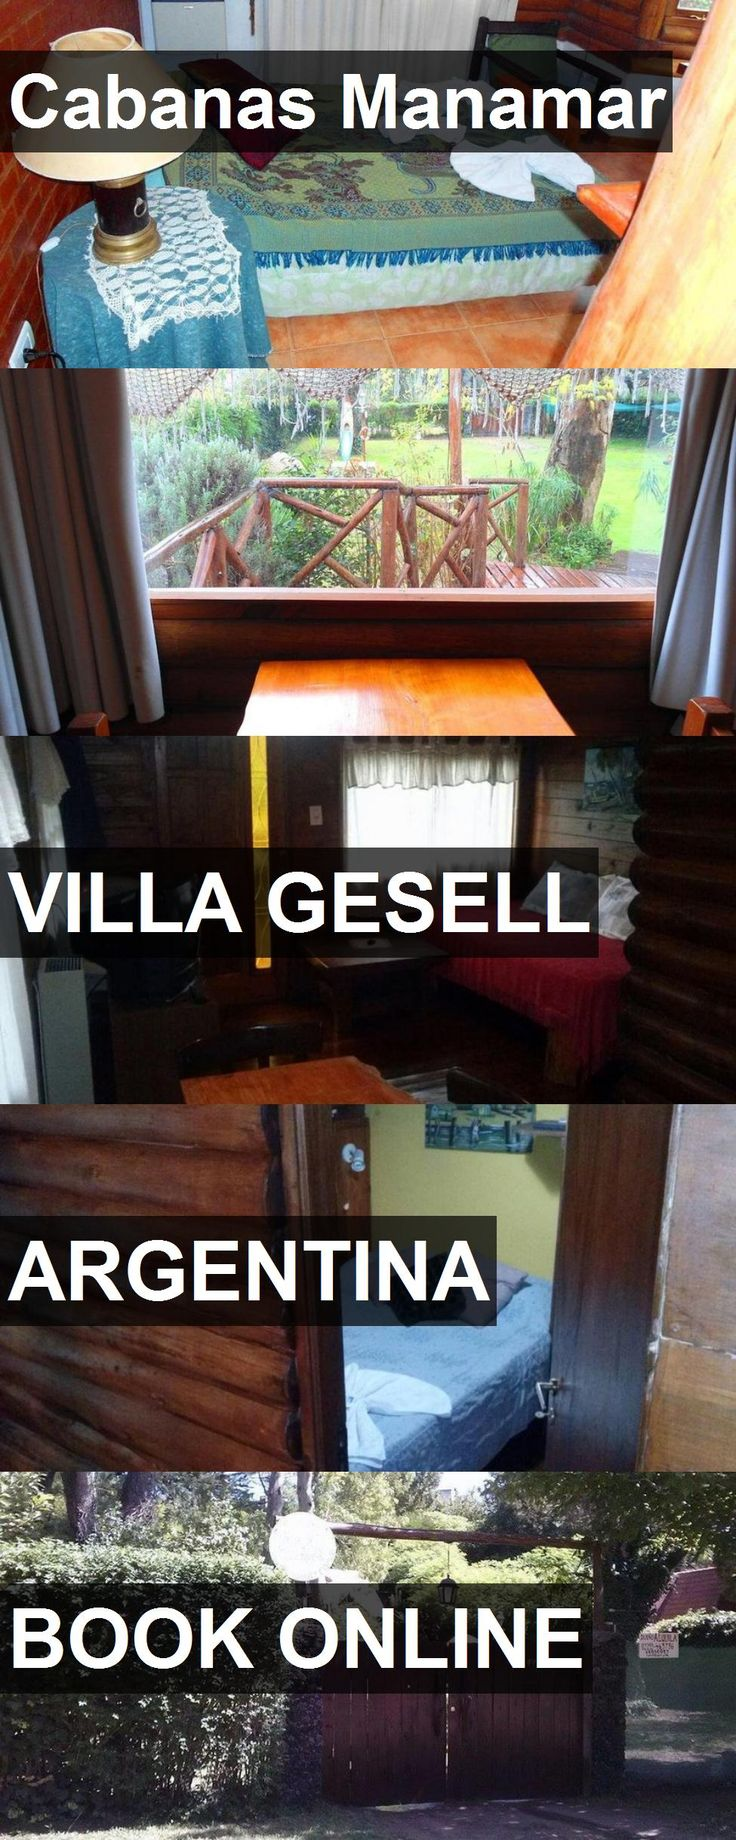 Hotel Cabanas Manamar in Villa Gesell, Argentina. For more information, photos, reviews and best prices please follow the link. #Argentina #VillaGesell #travel #vacation #hotel